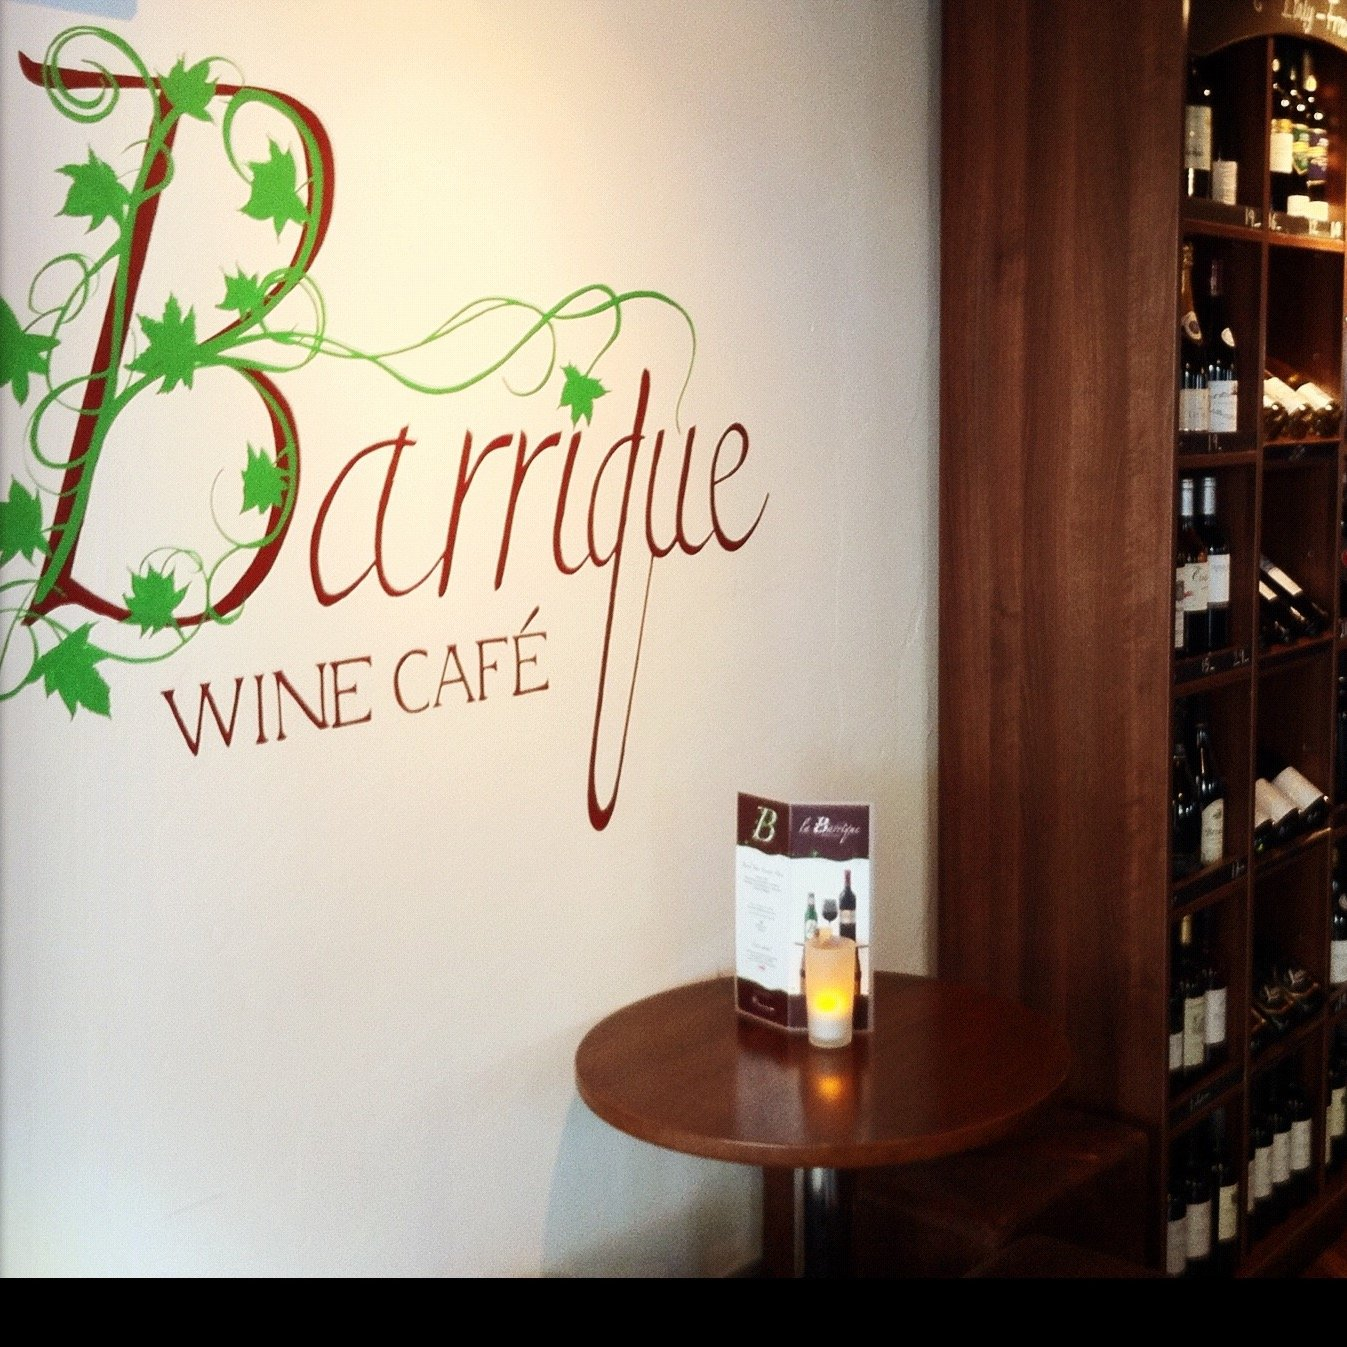 la barrique wine bar labarrique twitter. Black Bedroom Furniture Sets. Home Design Ideas